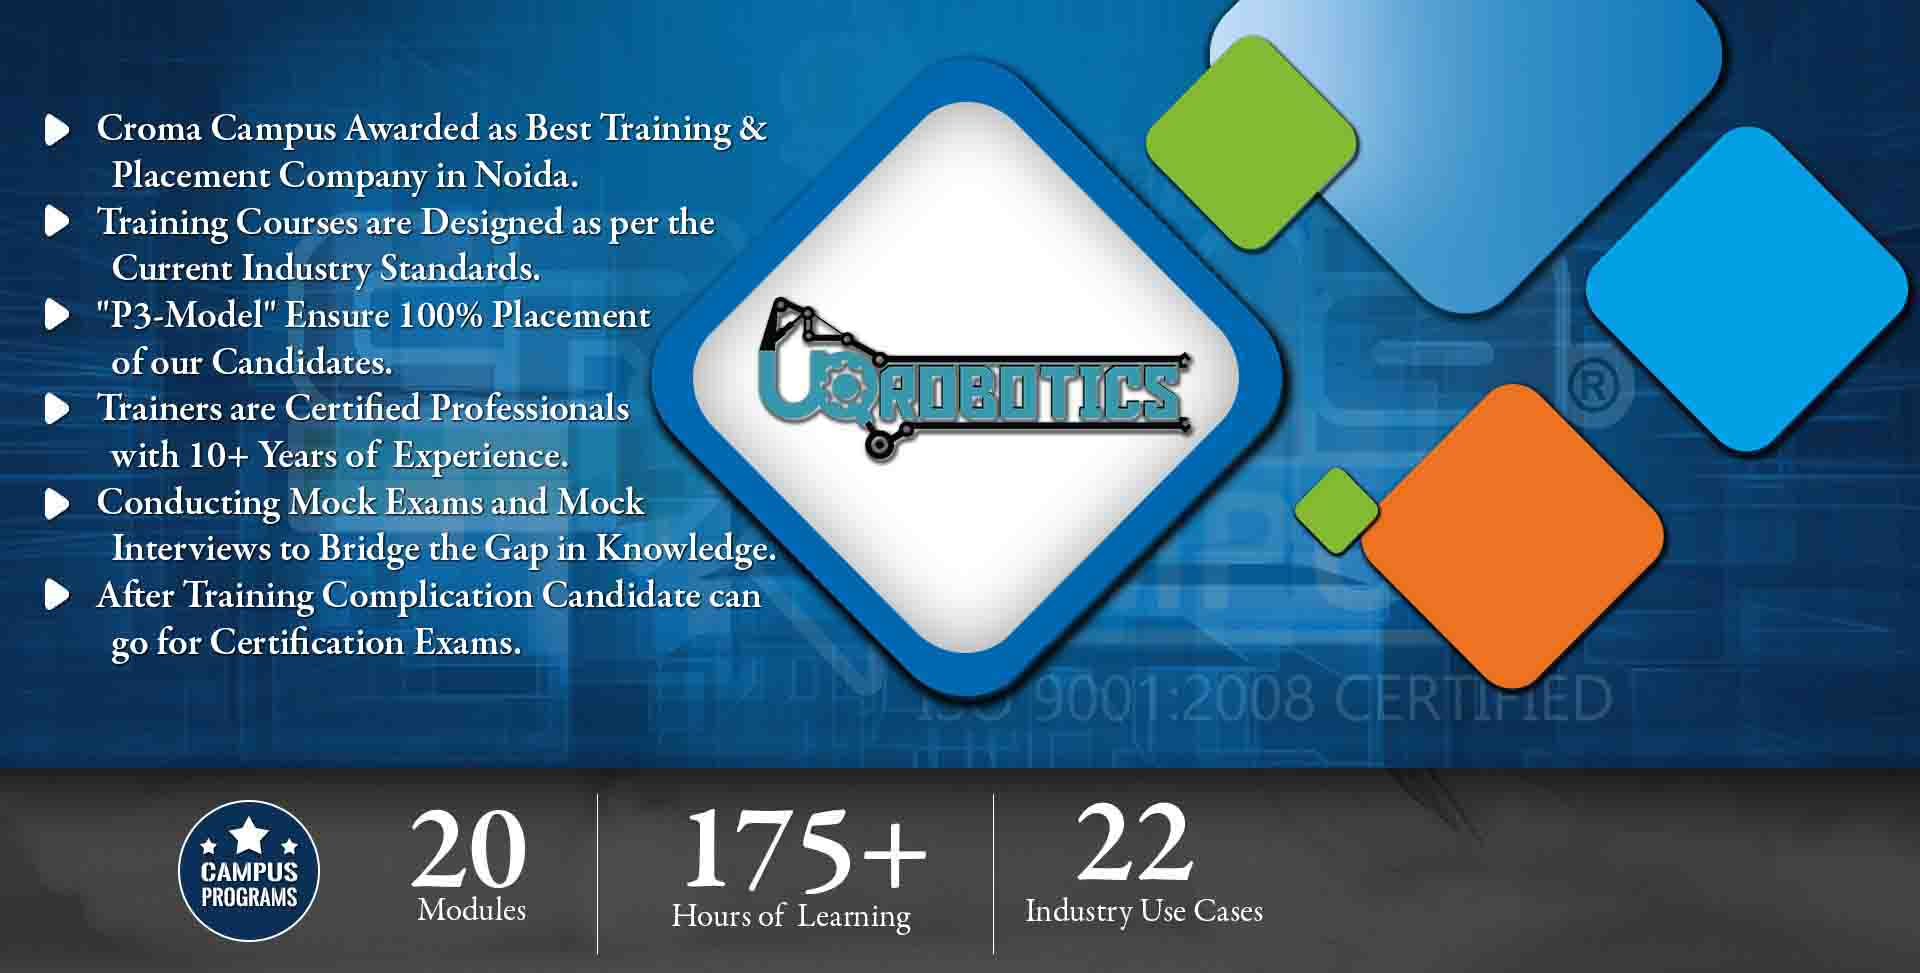 Robotics Training in Noida- Croma Campus